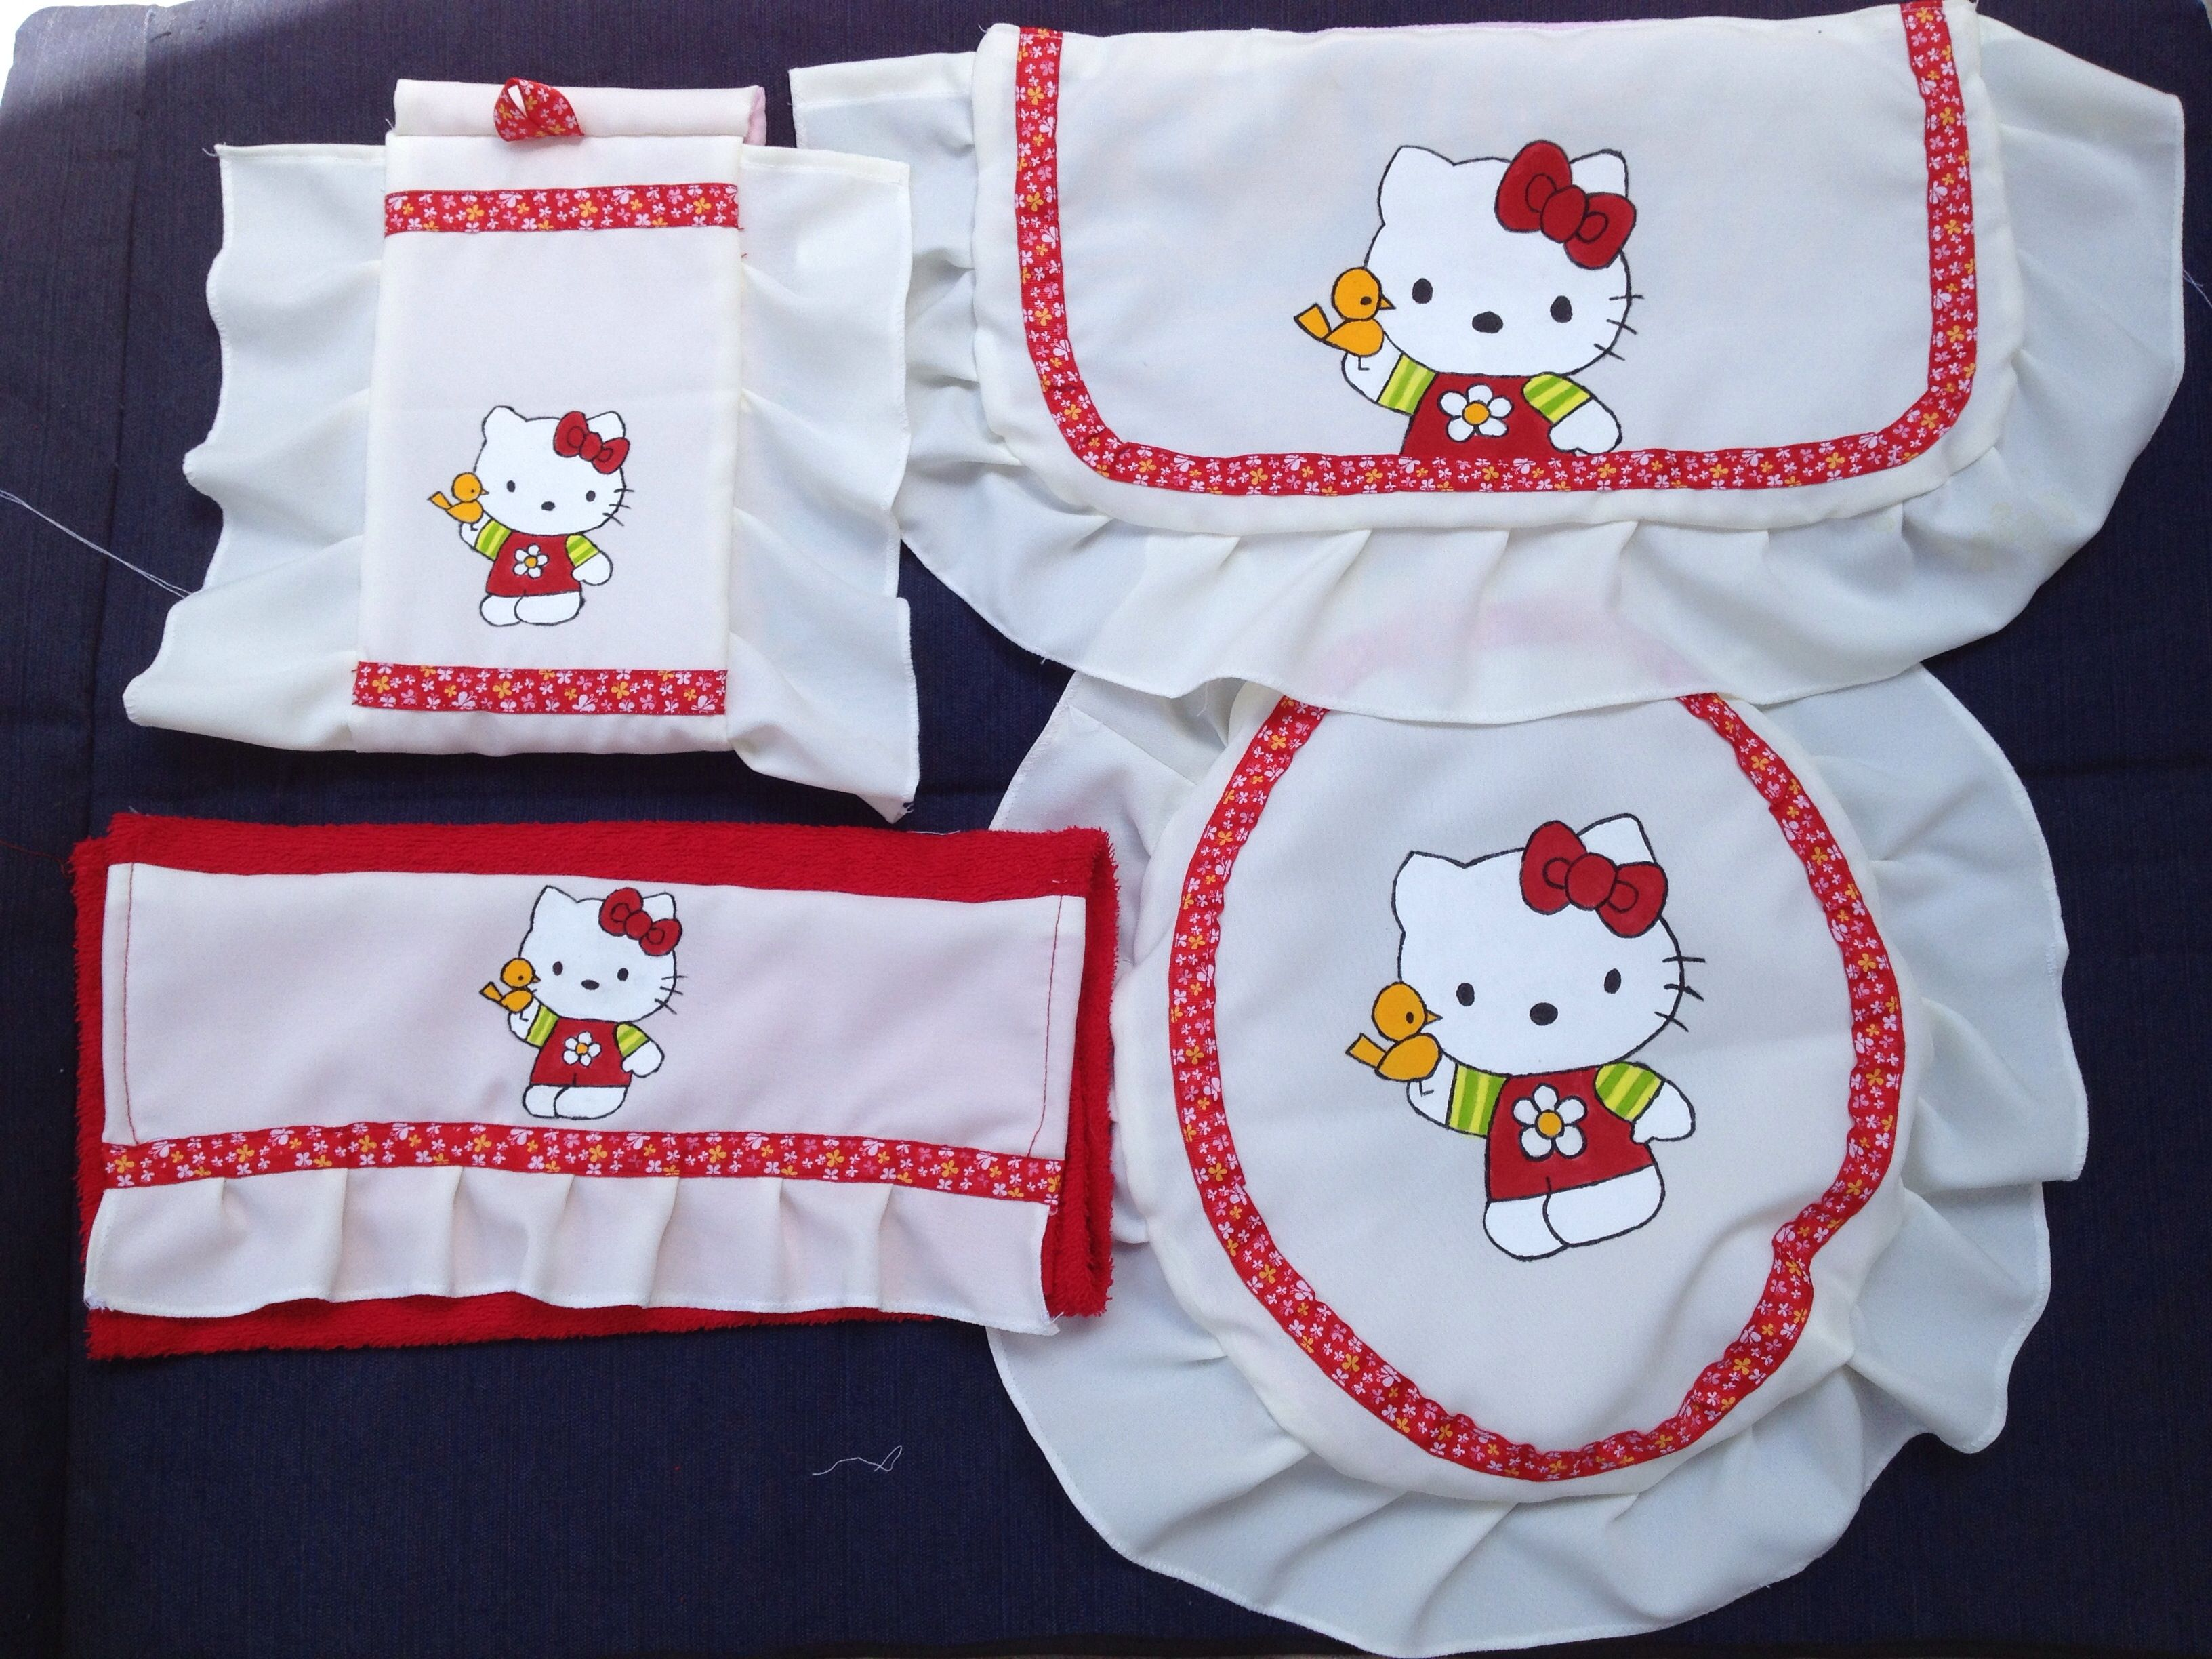 hello kitty potty chair barstool covers toilet cover hand painted juego de baño a la